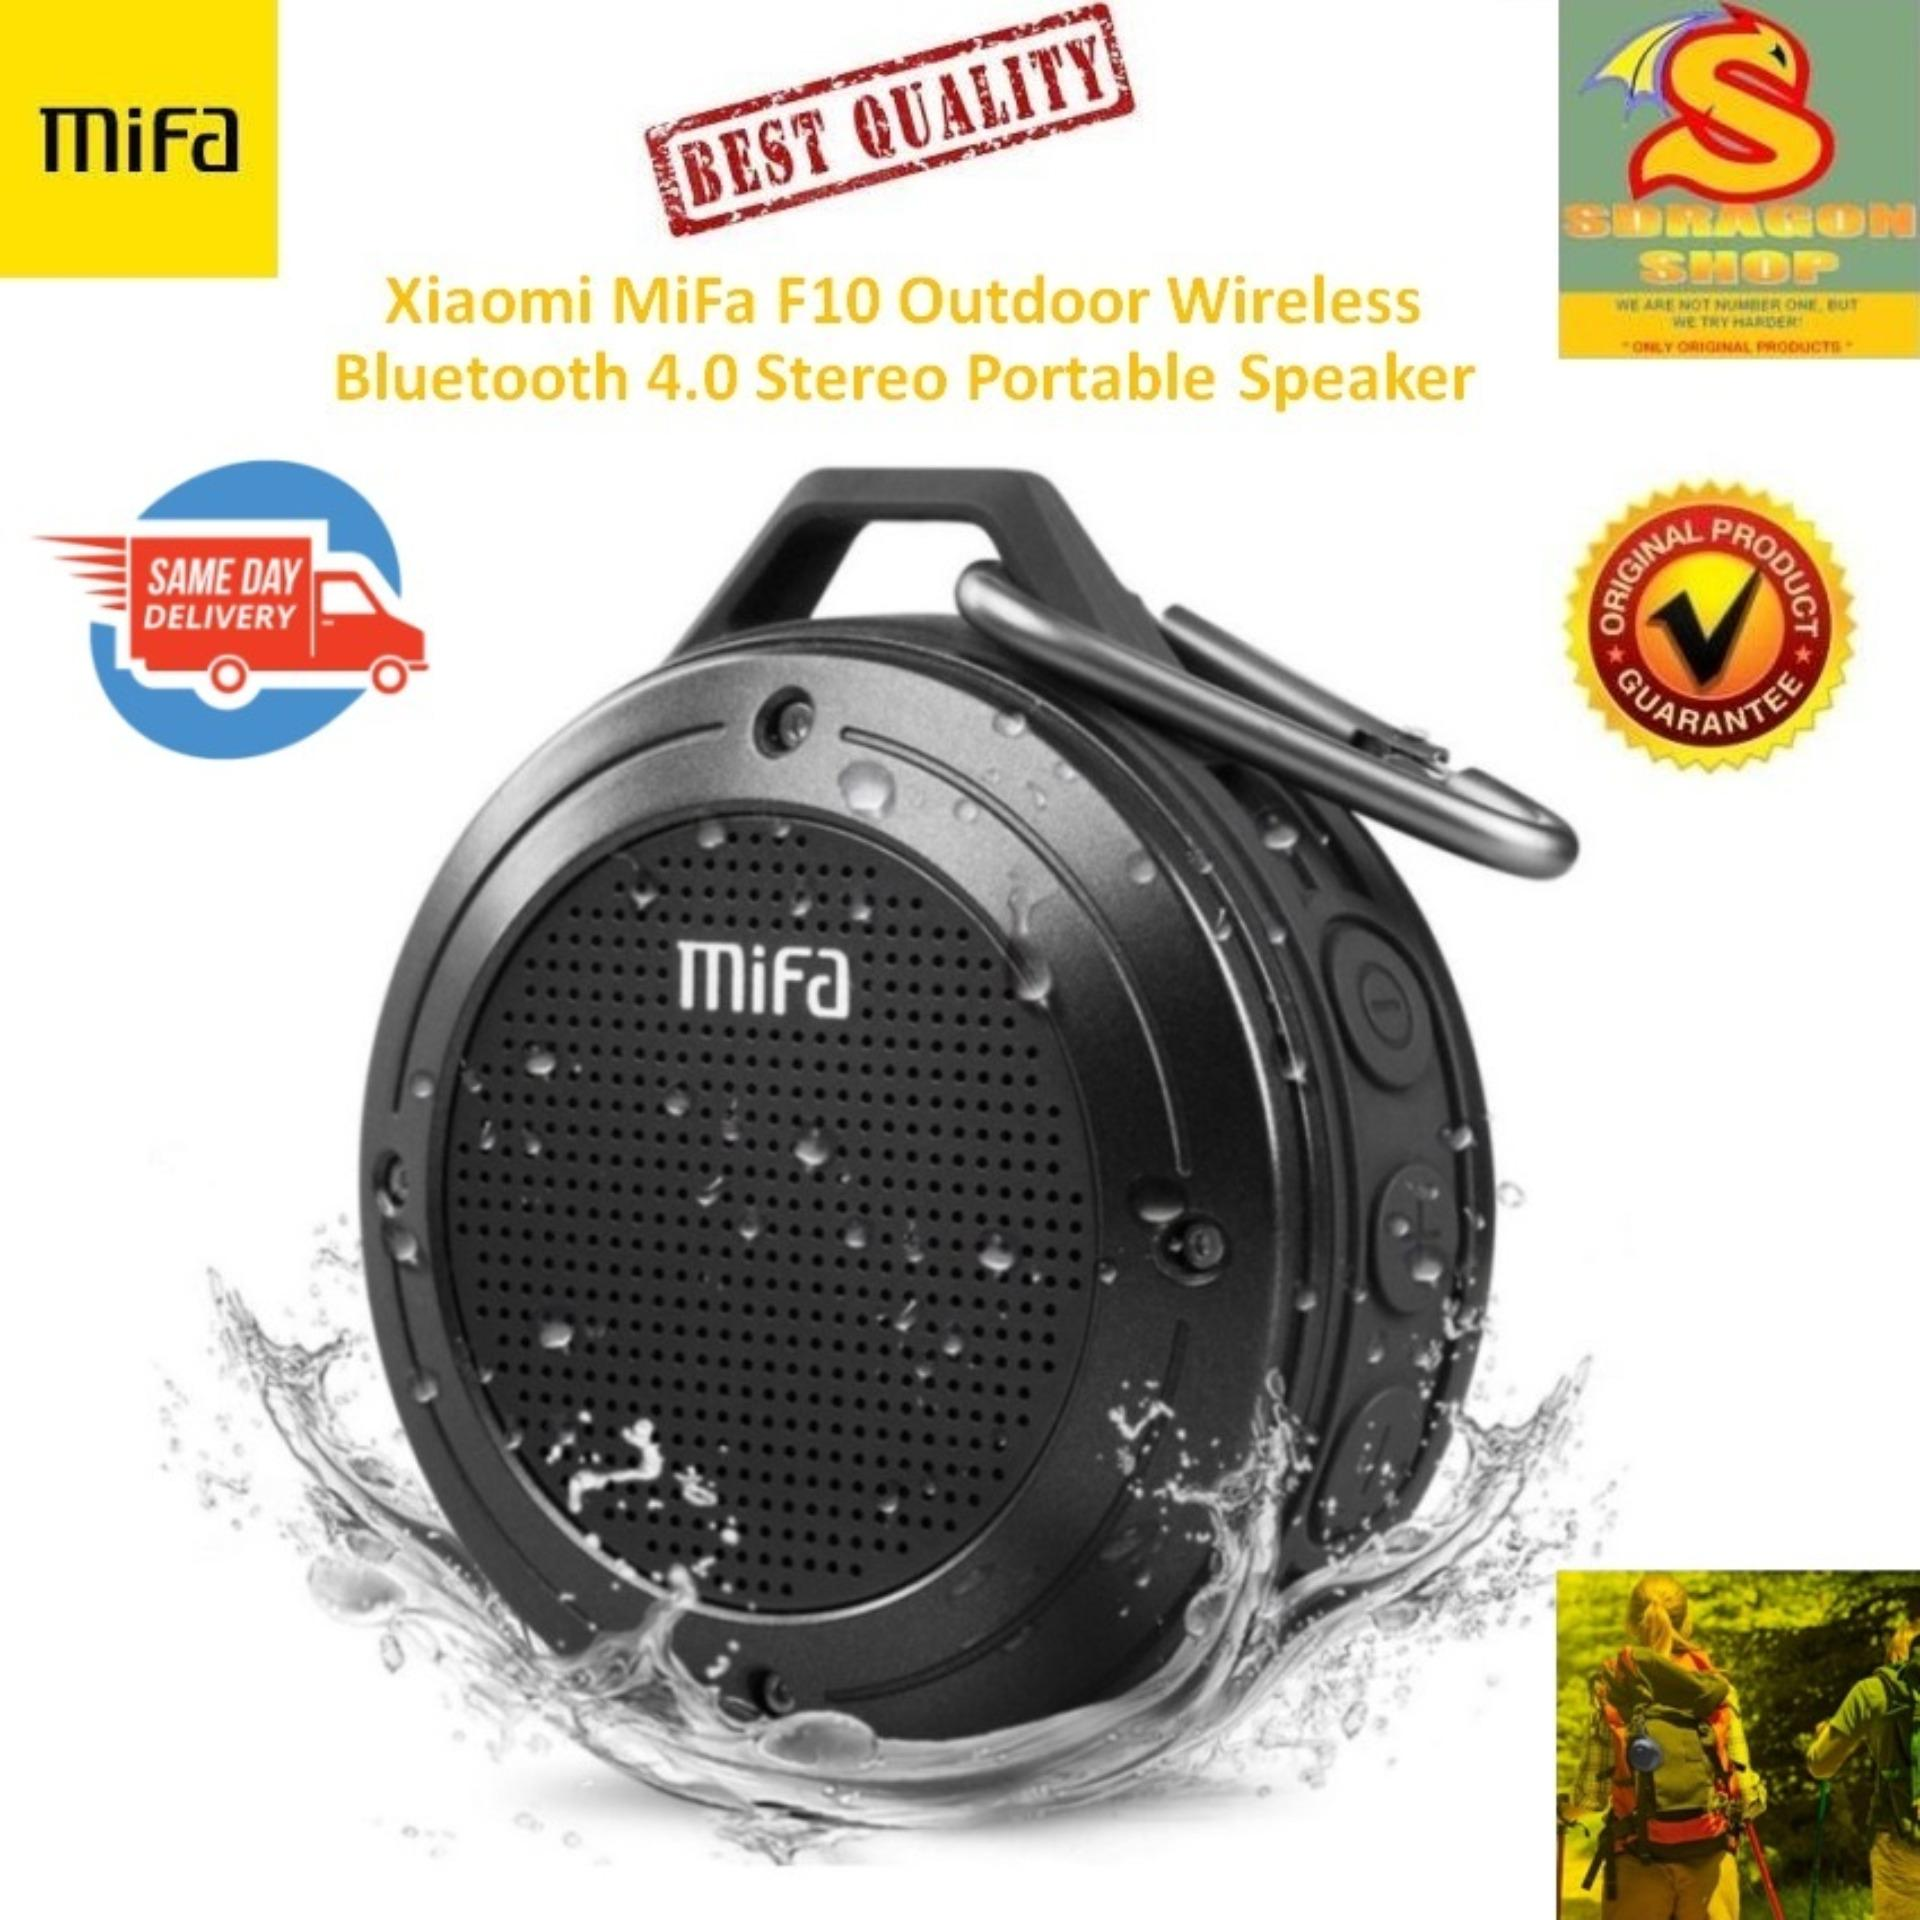 Xiaomi MiFa F10 Outdoor Wireless Bluetooth 4.0 Stereo Portable Speaker Built-in Mic Shock Resistance